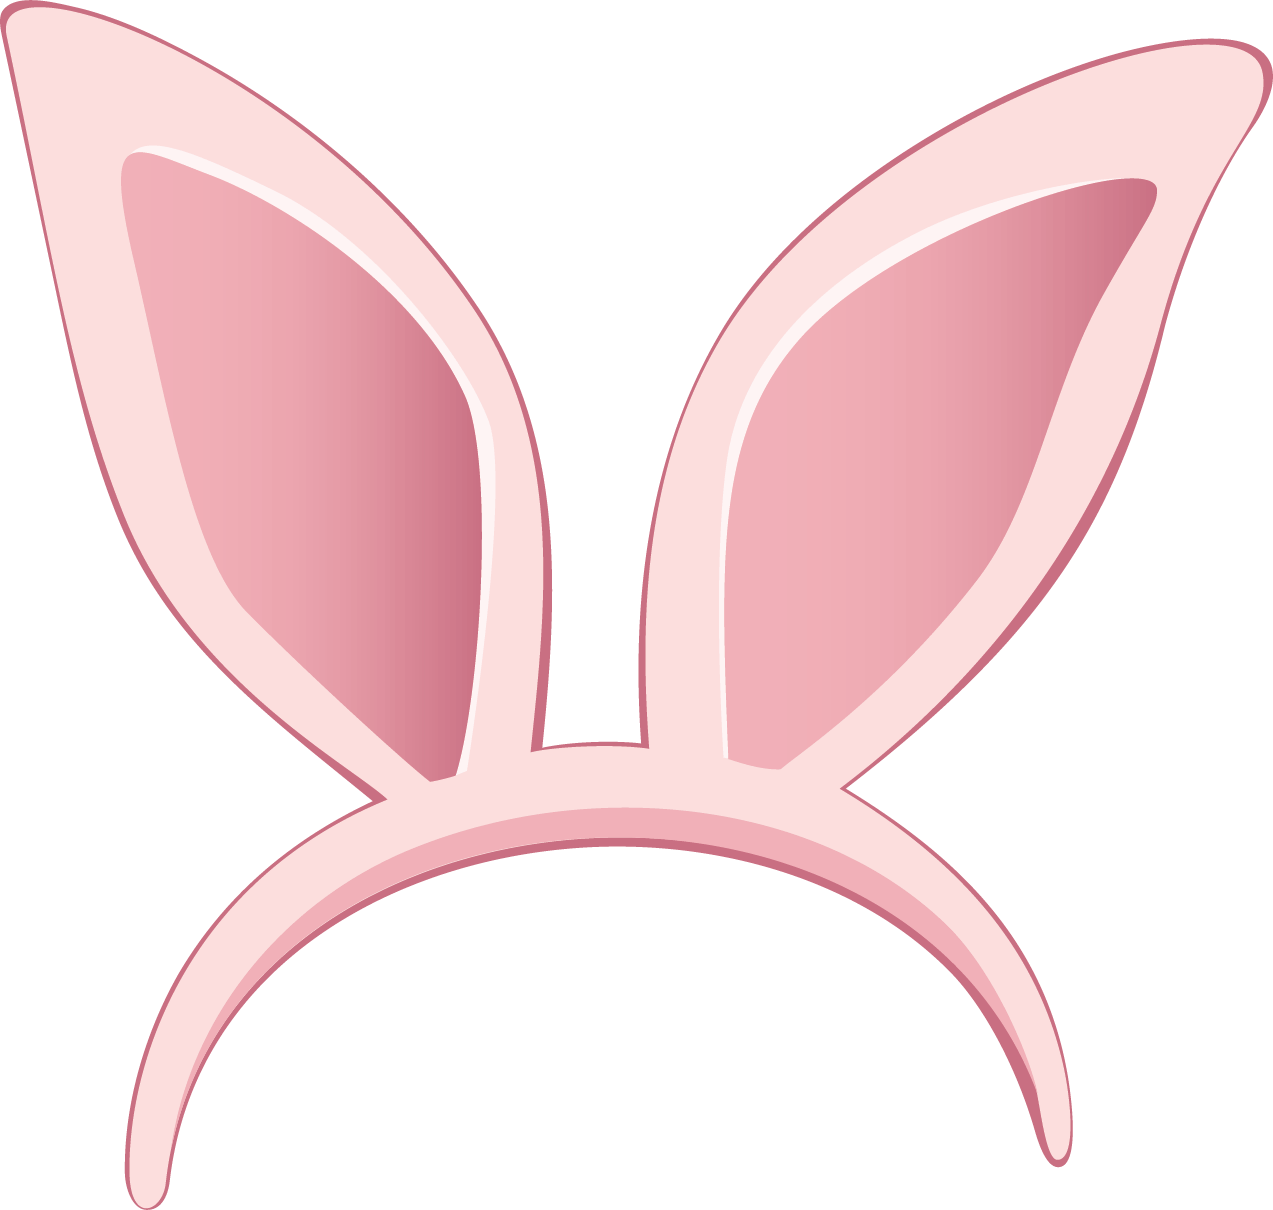 1273x1210 Bunny Ears Transparent Png